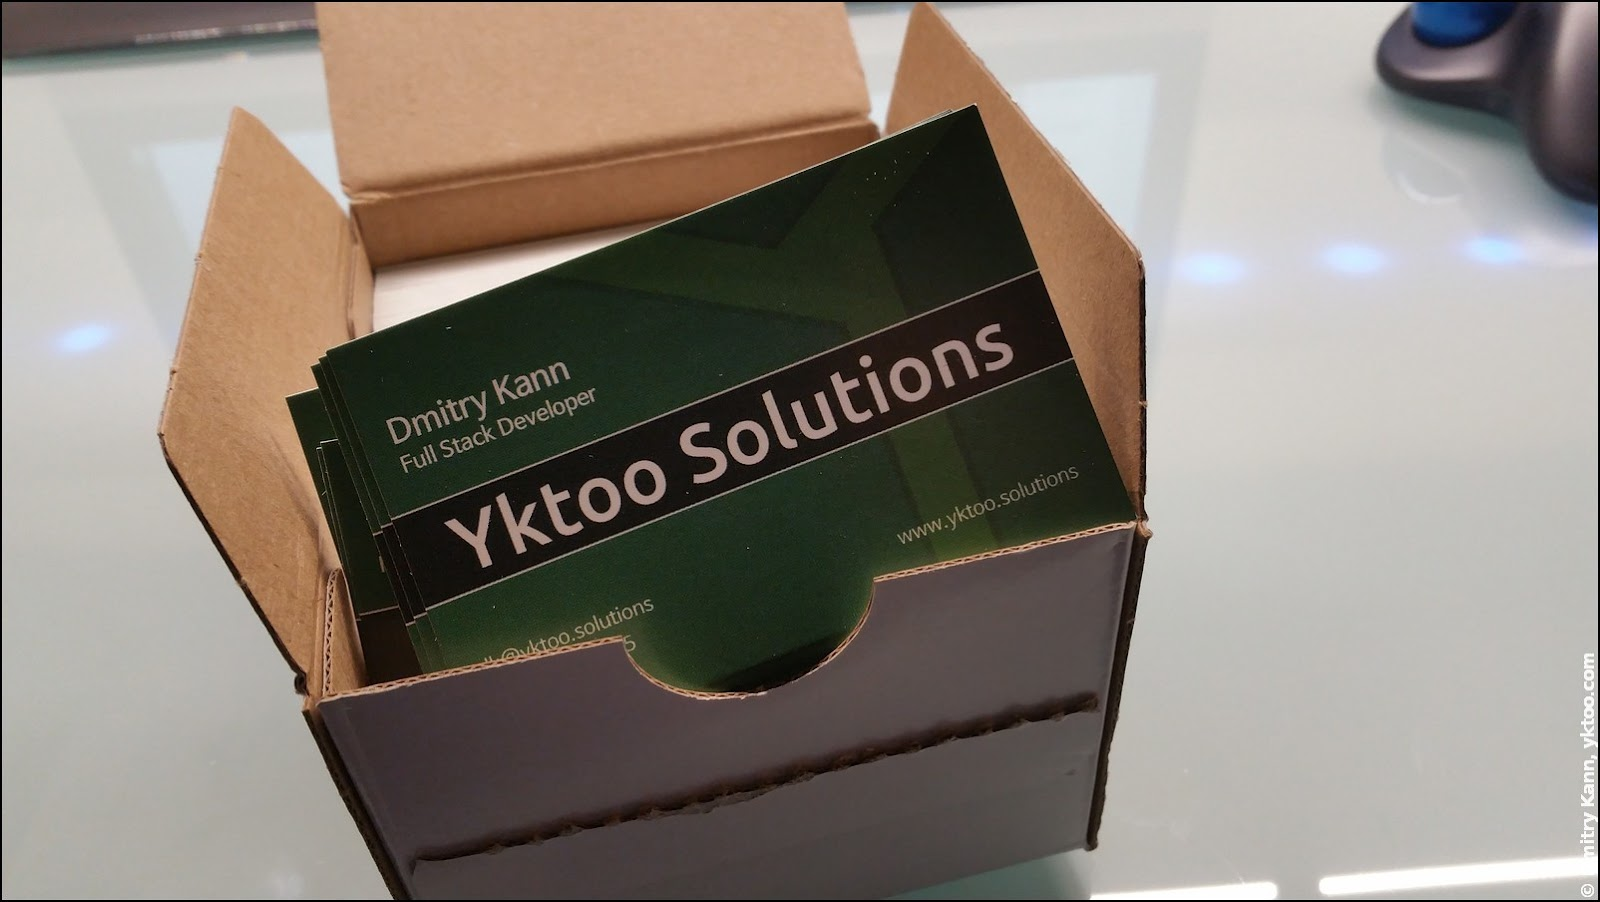 Yktoo Solutions business cards.